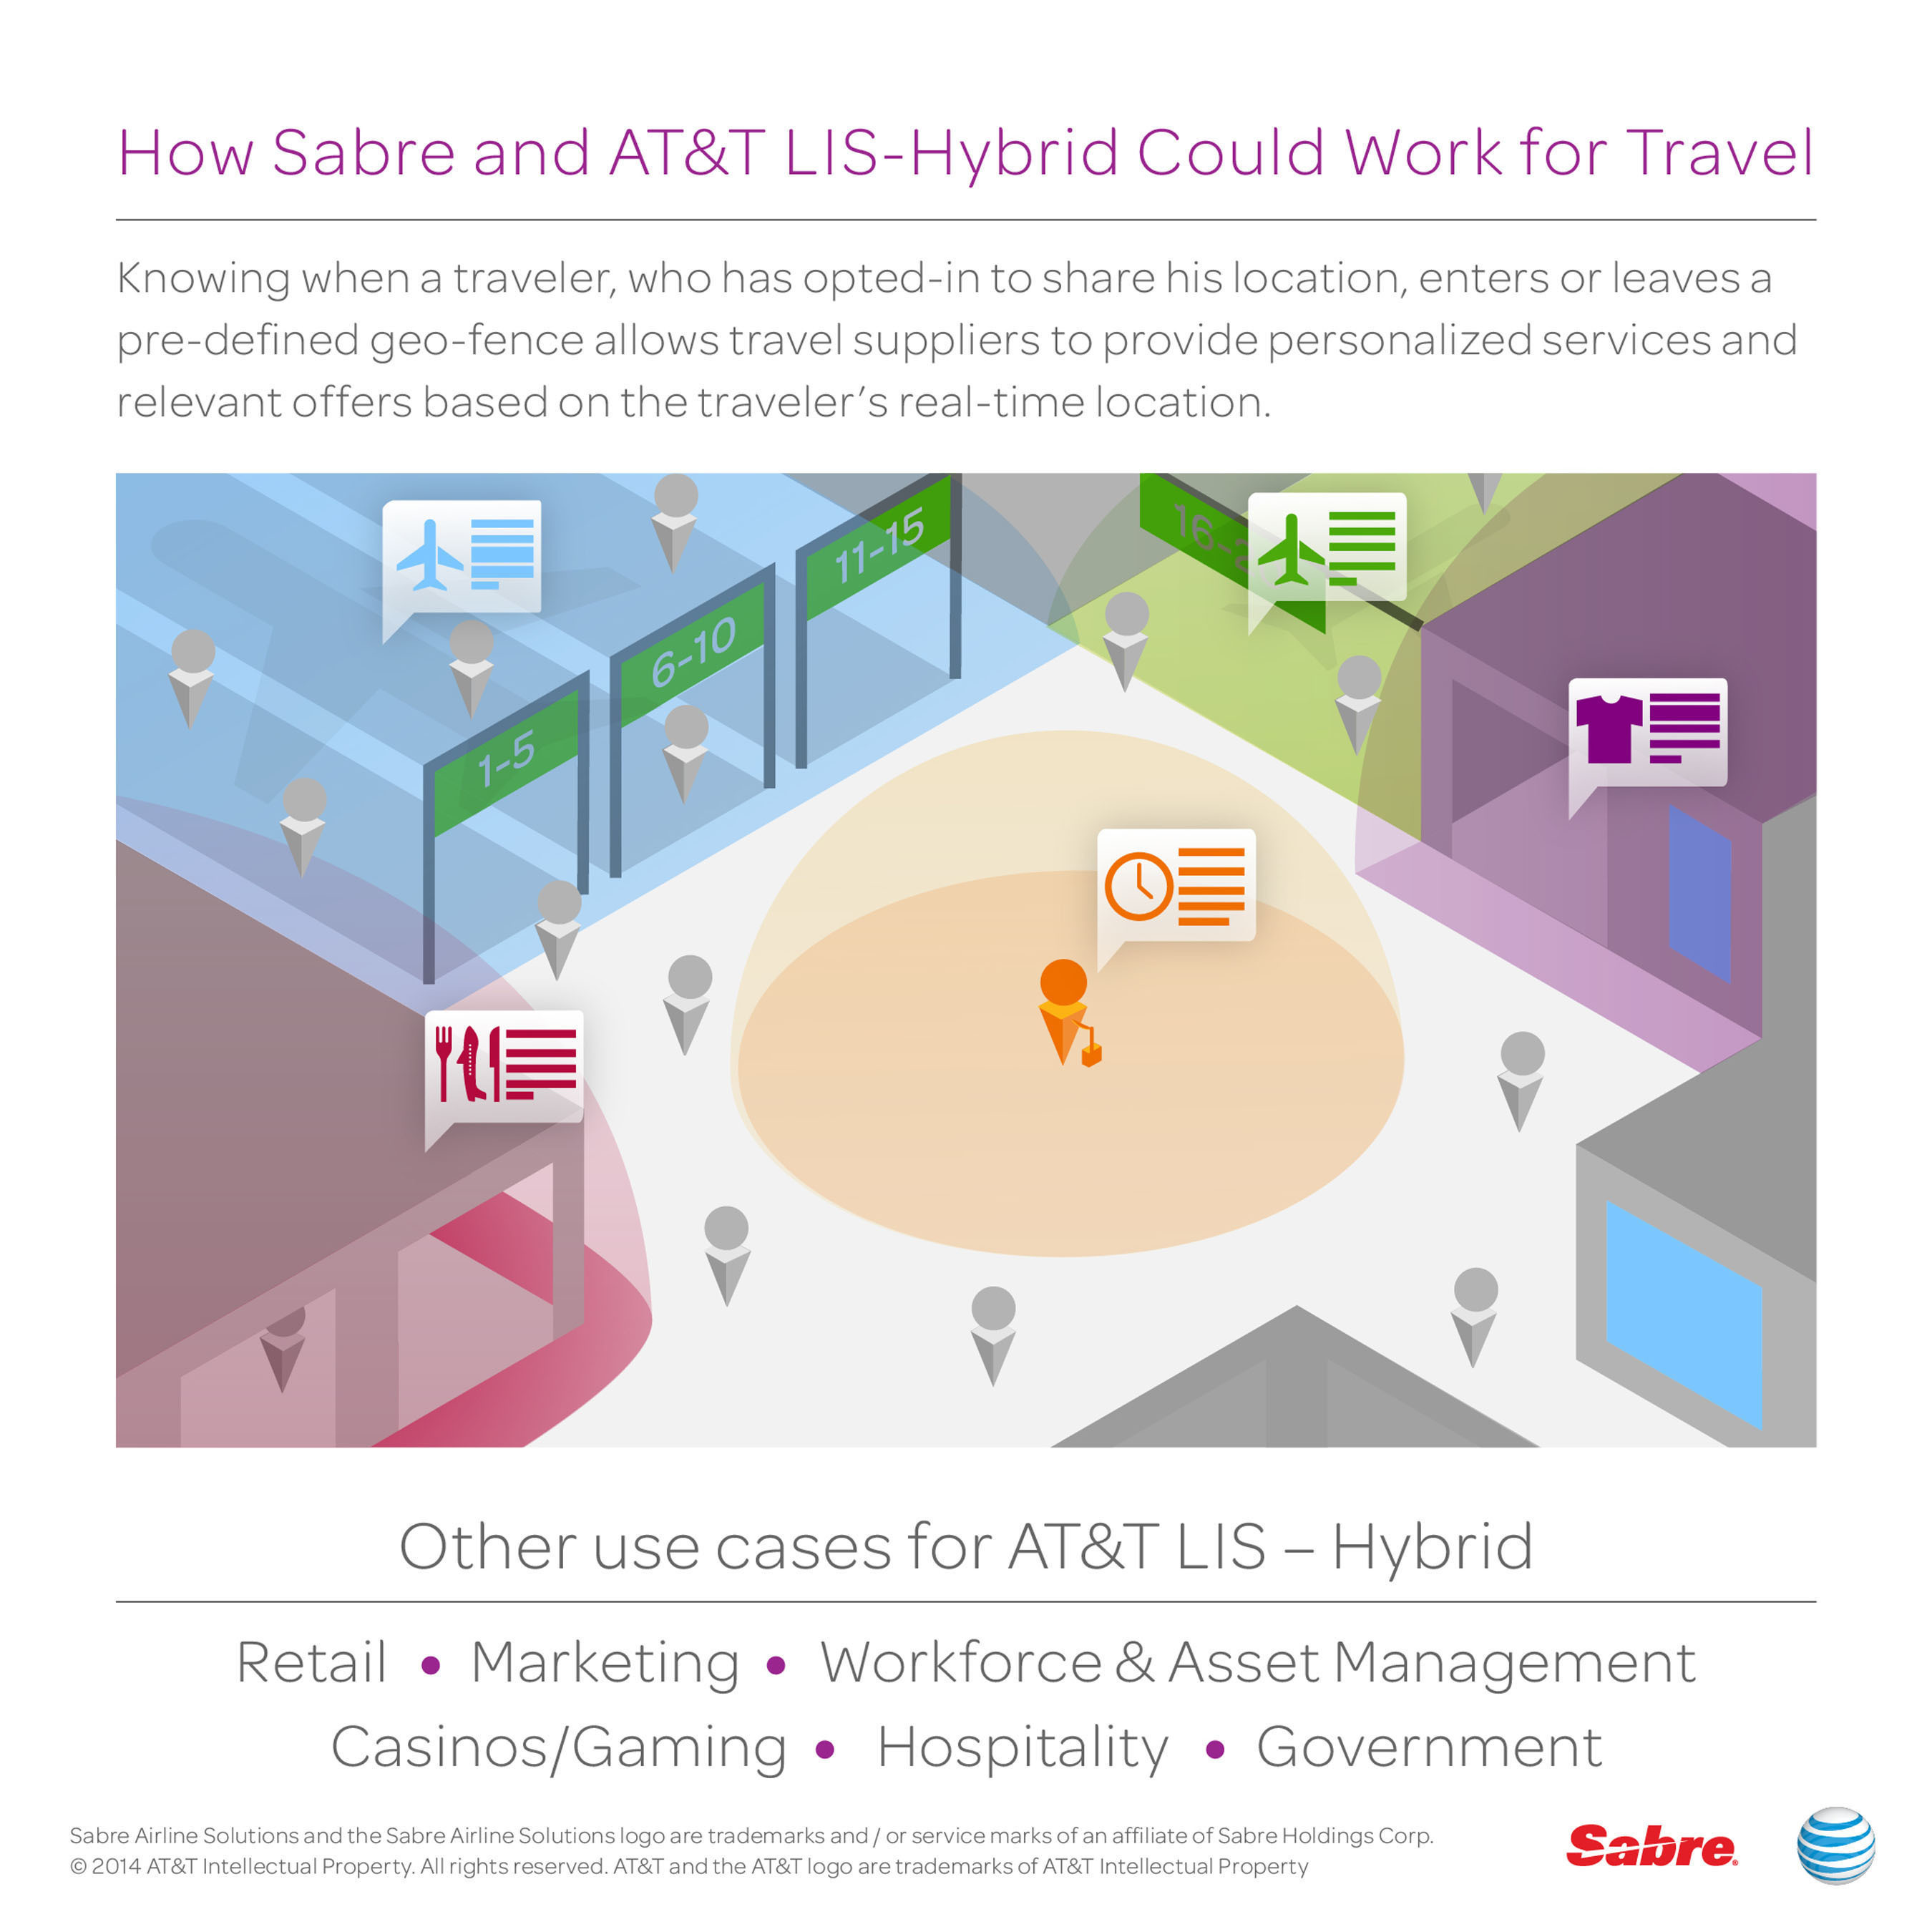 Travel technology firm, Sabre and AT&T explore how new mobile services and geo-fencing technology could ...